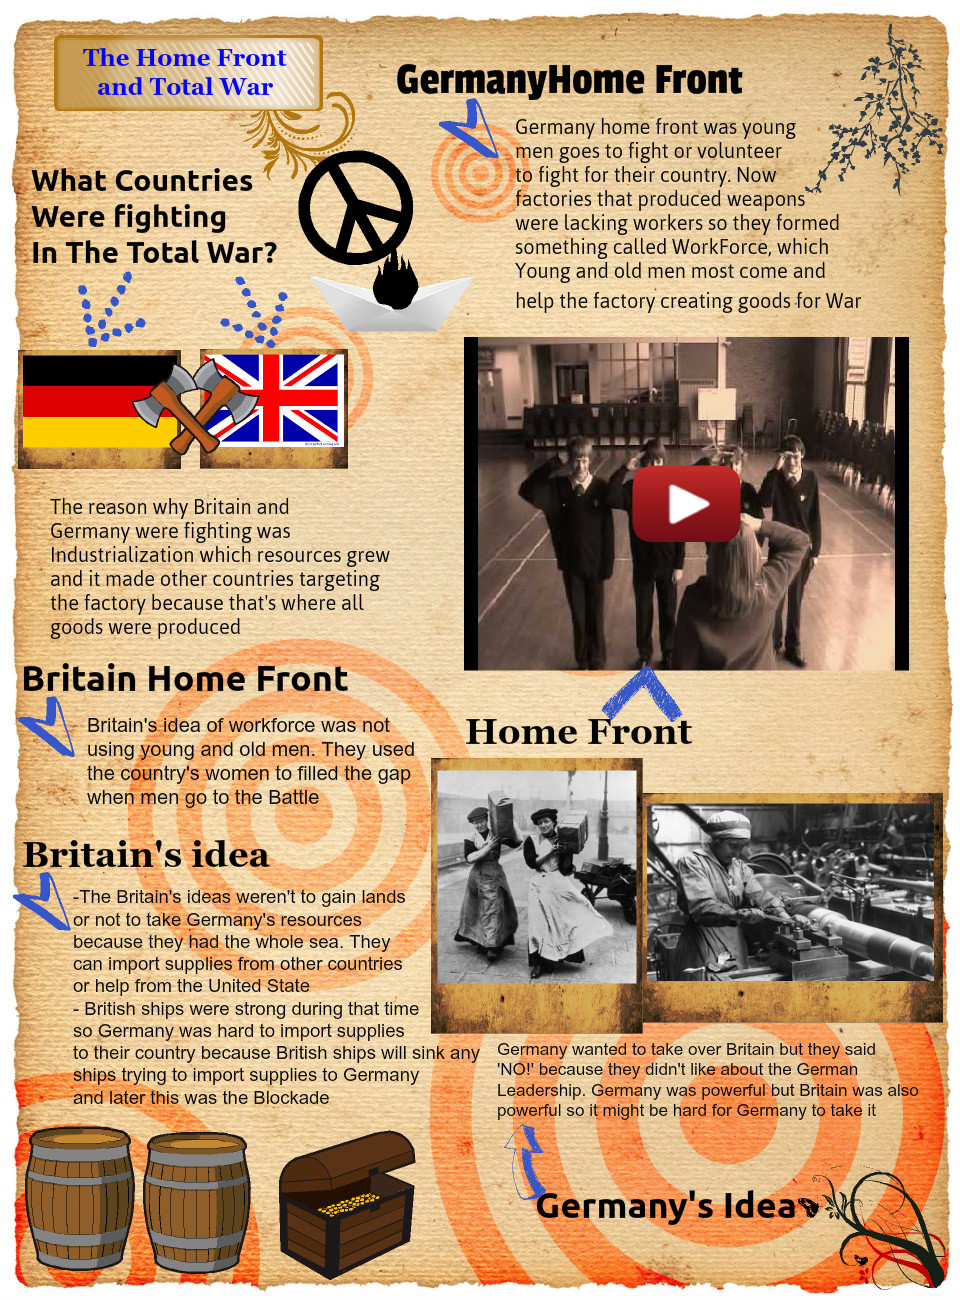 The Home Front and Total War